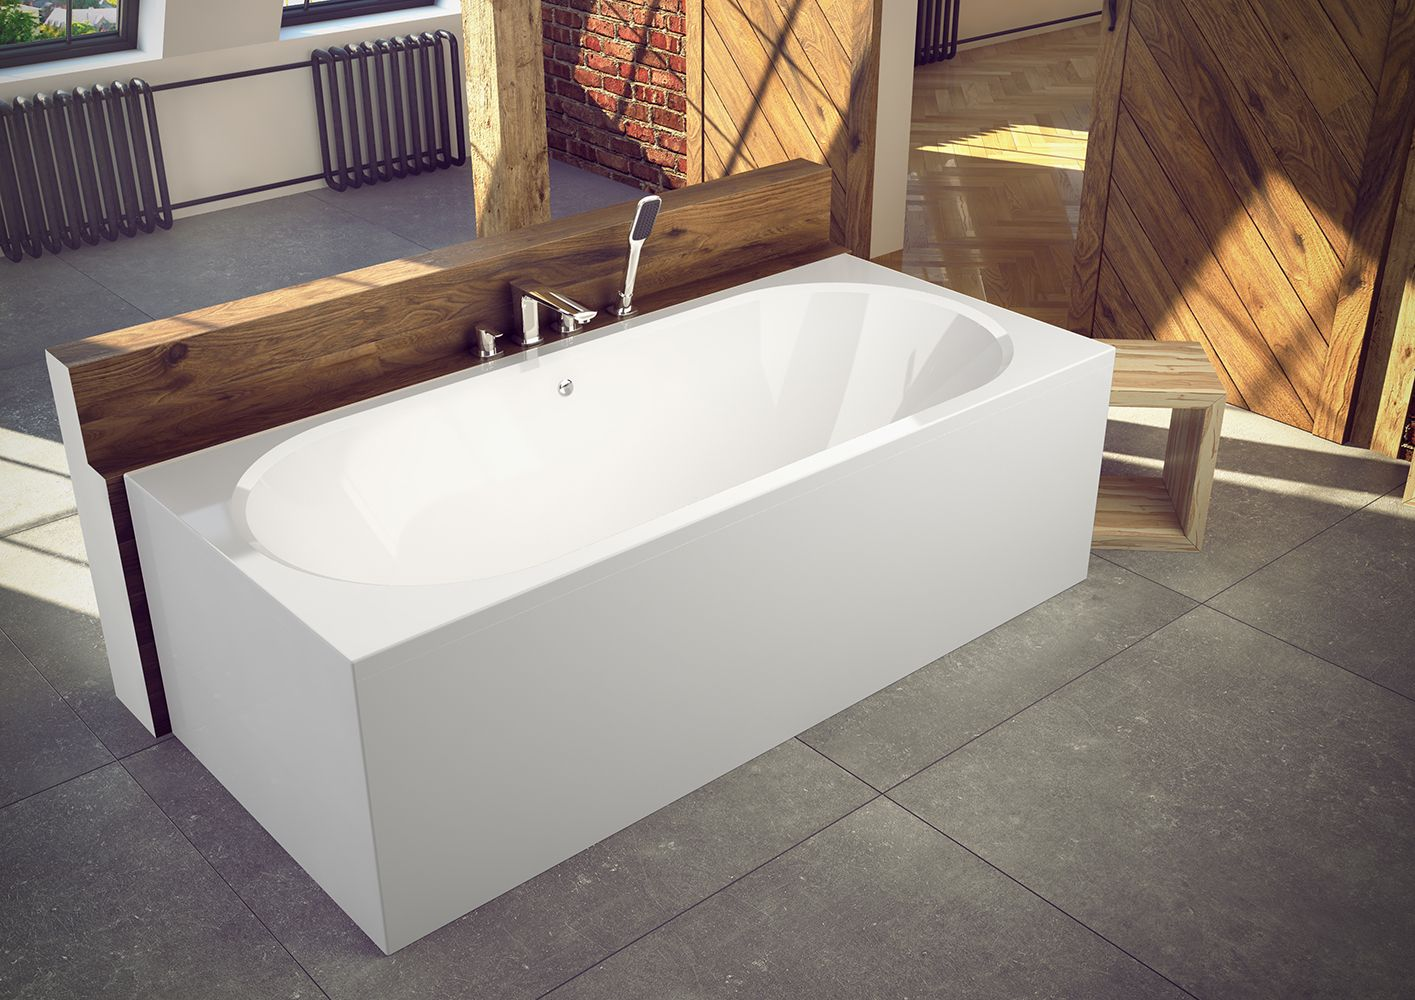 Wanna Prostokatna Vitae Besco Besco Corner Bathtub Bathtub Modern Design